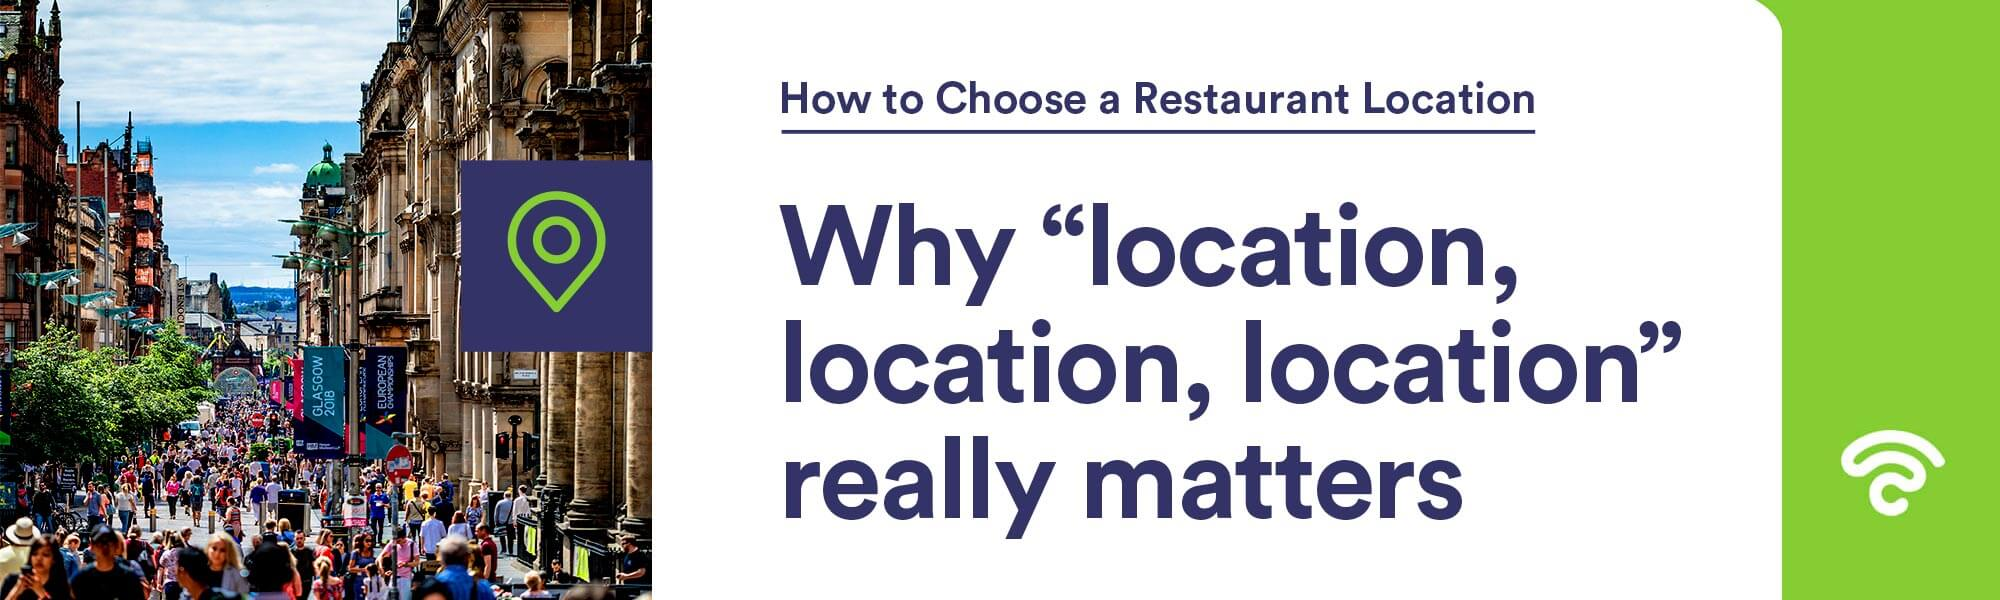 why restaurant location matters